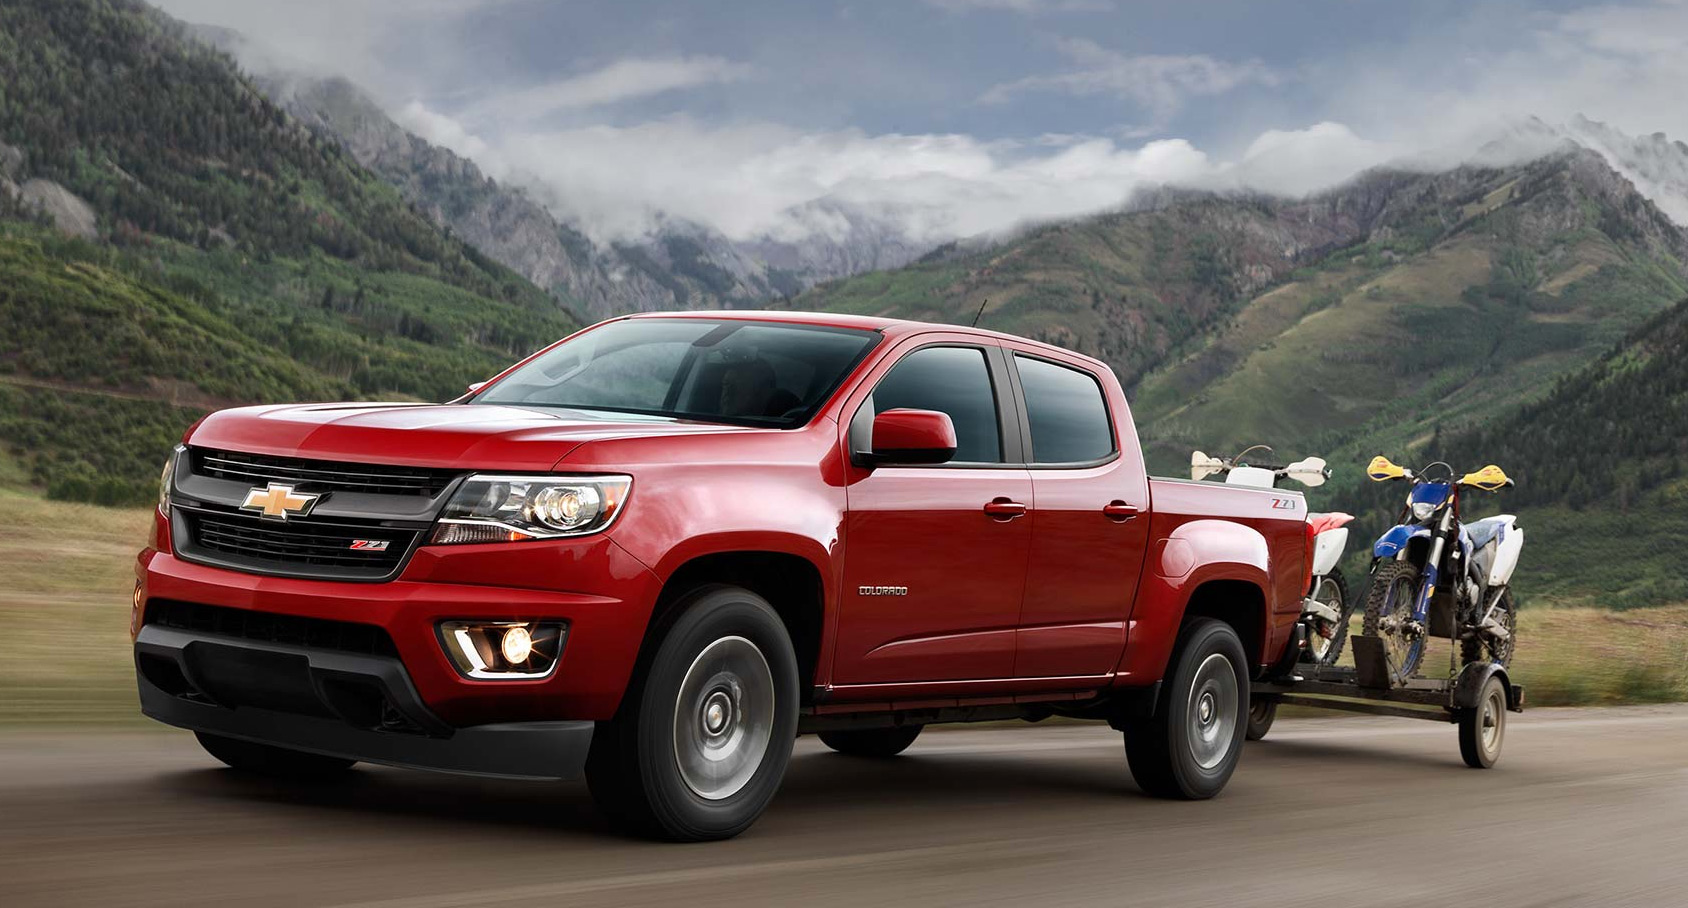 Valley Chevy - Man Buying New Chevrolet Vehicle: Colorado Towing